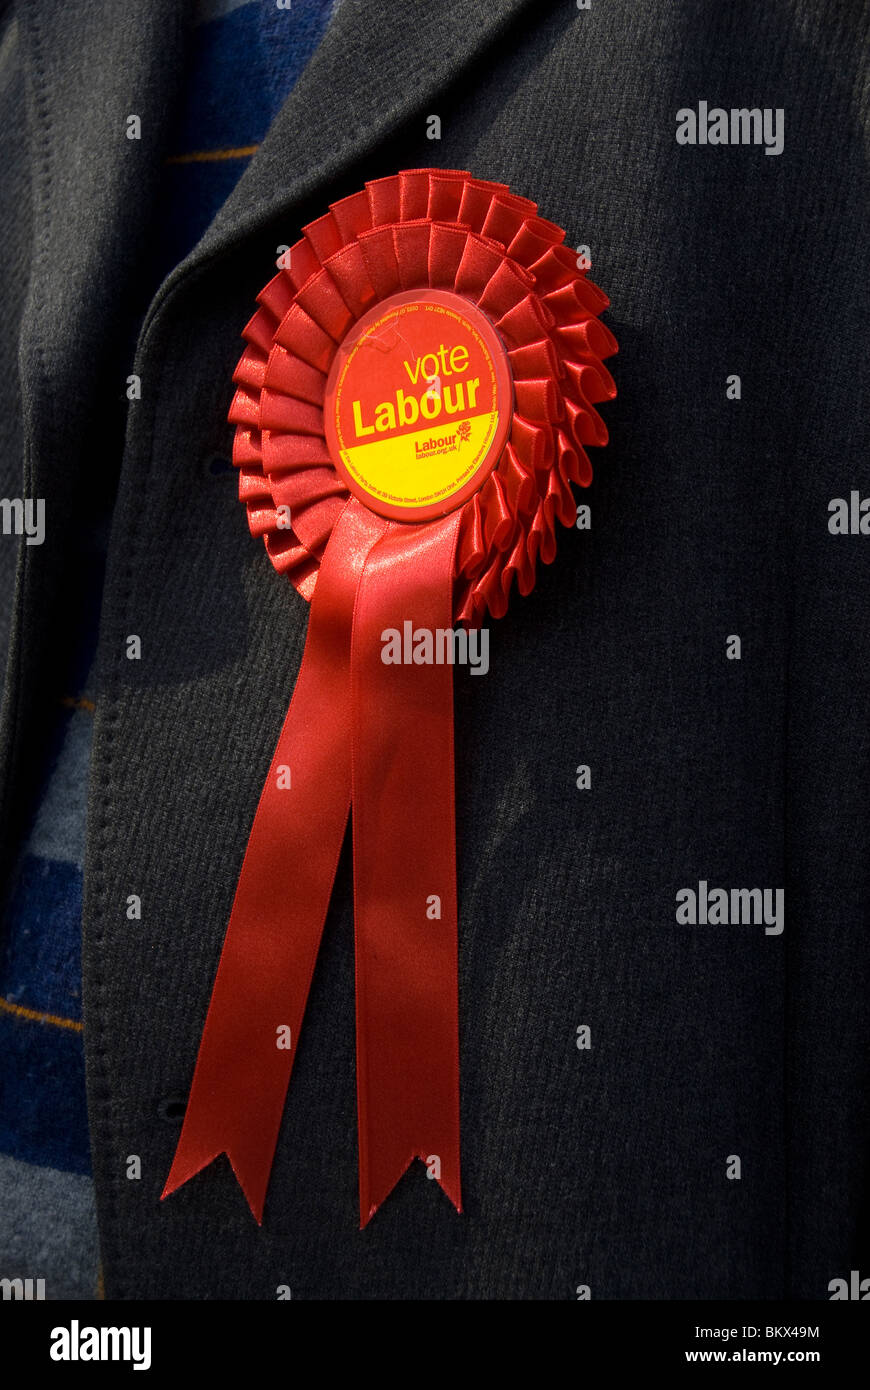 2010 Genera Election East . Columbia Road polling station.Labour party rosette. - Stock Image